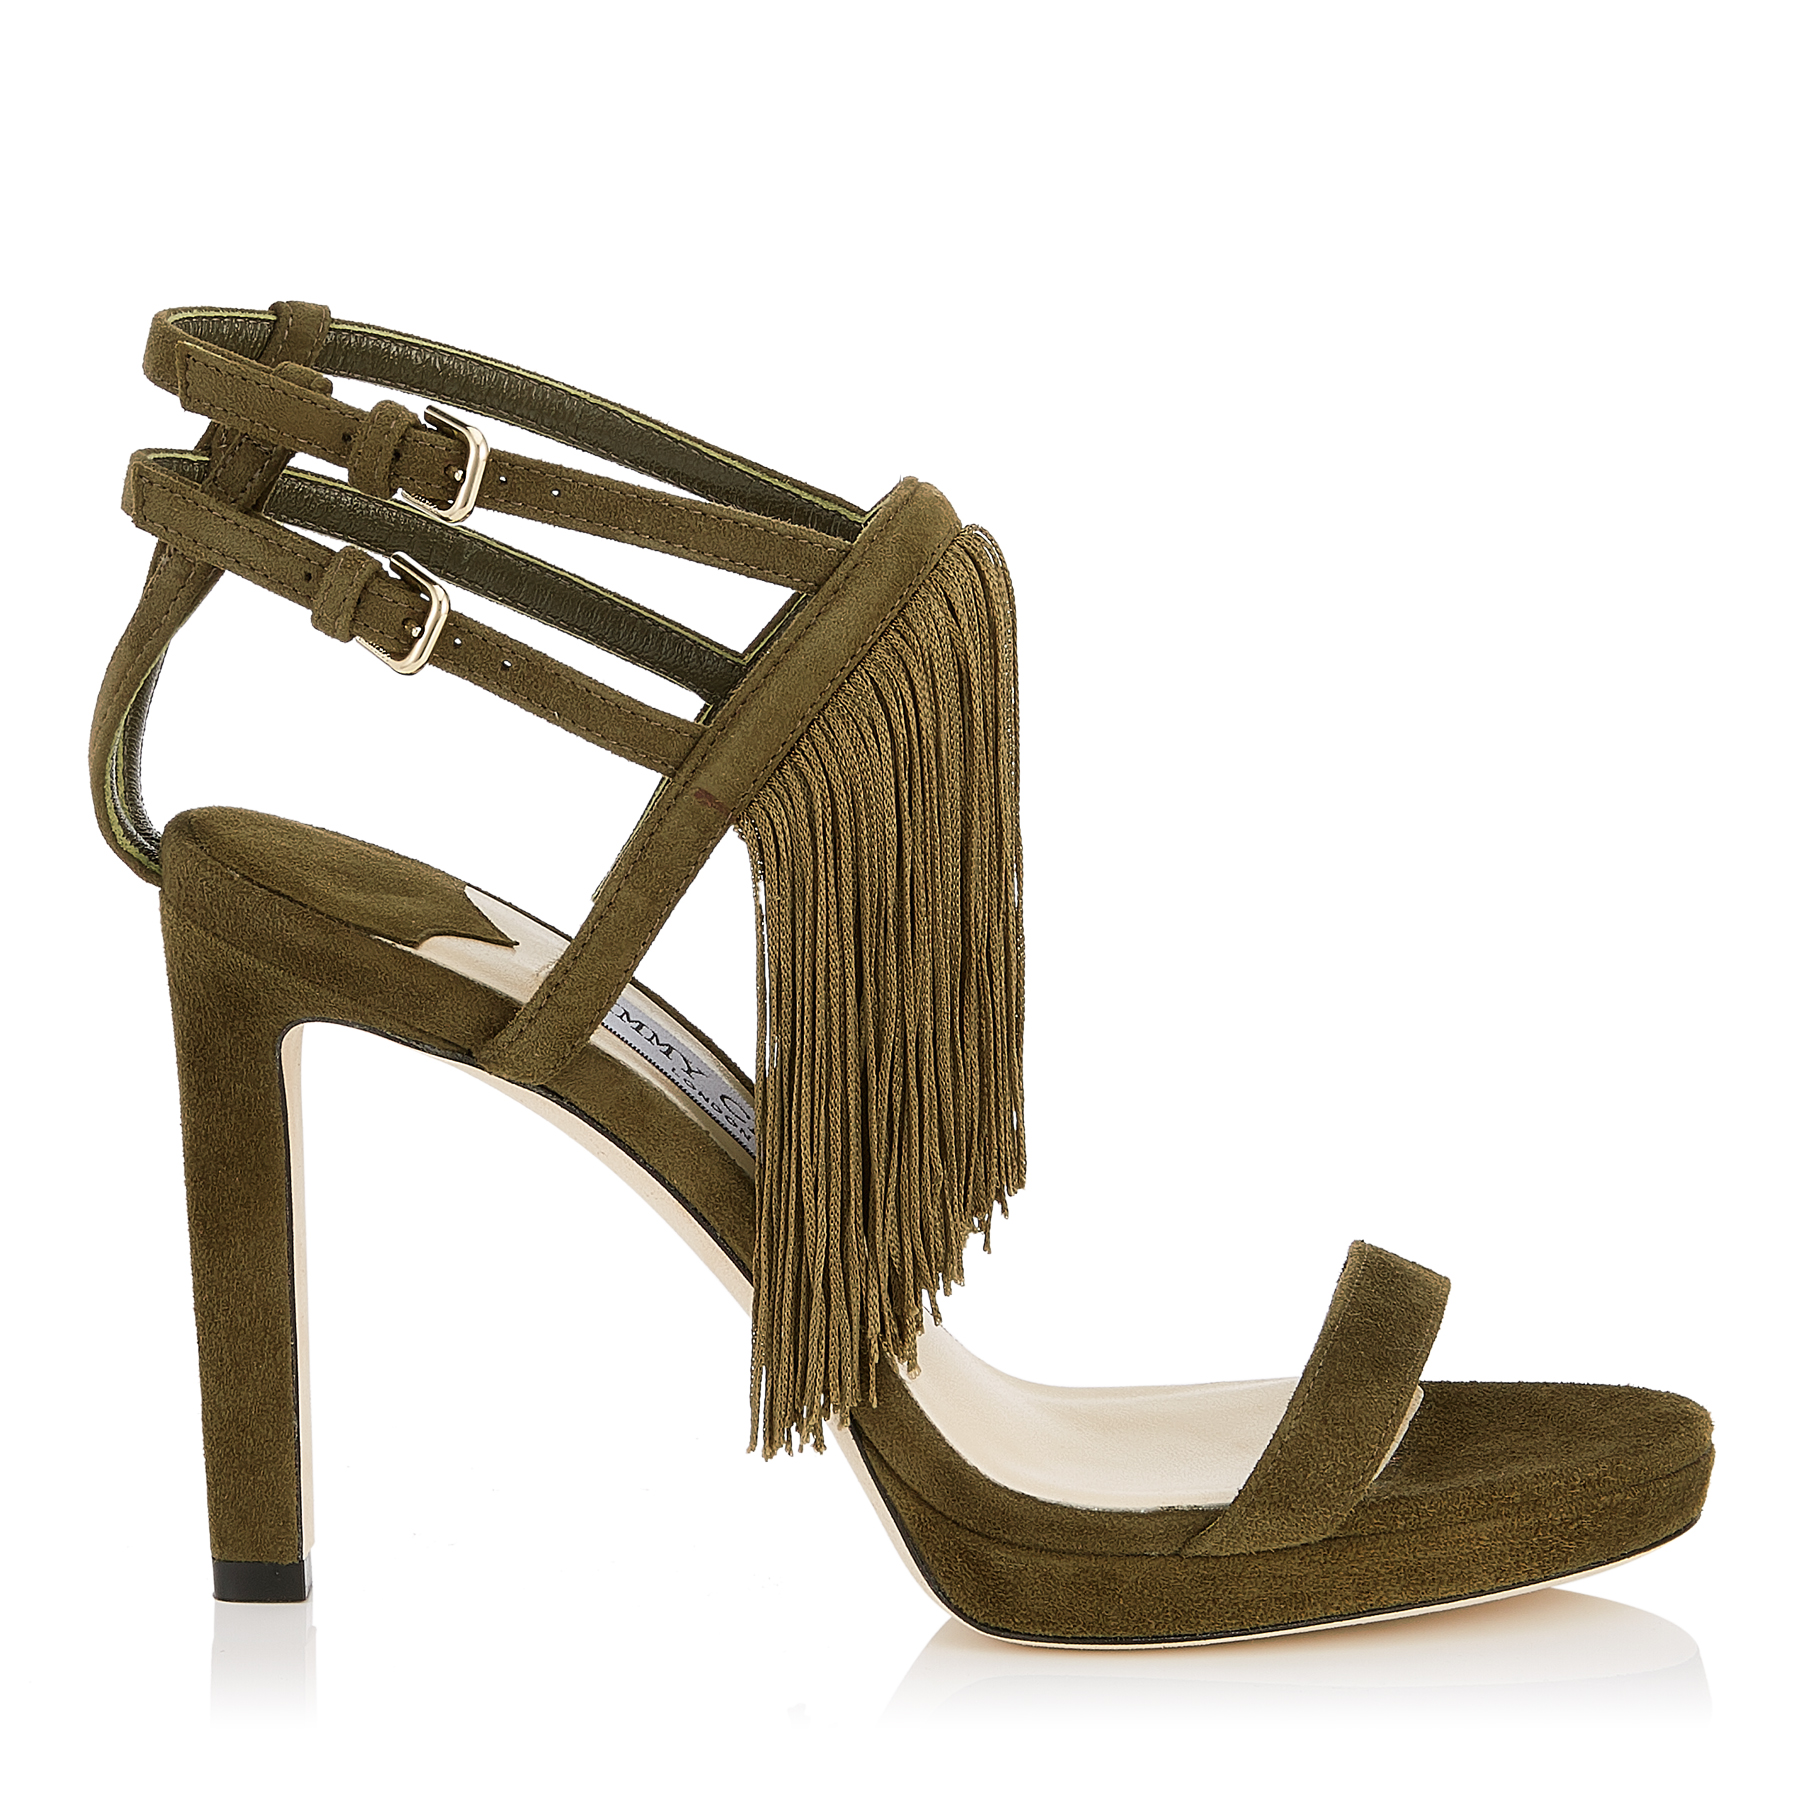 FARRAH 100 Olive Suede Sandals with Fringe by Jimmy Choo